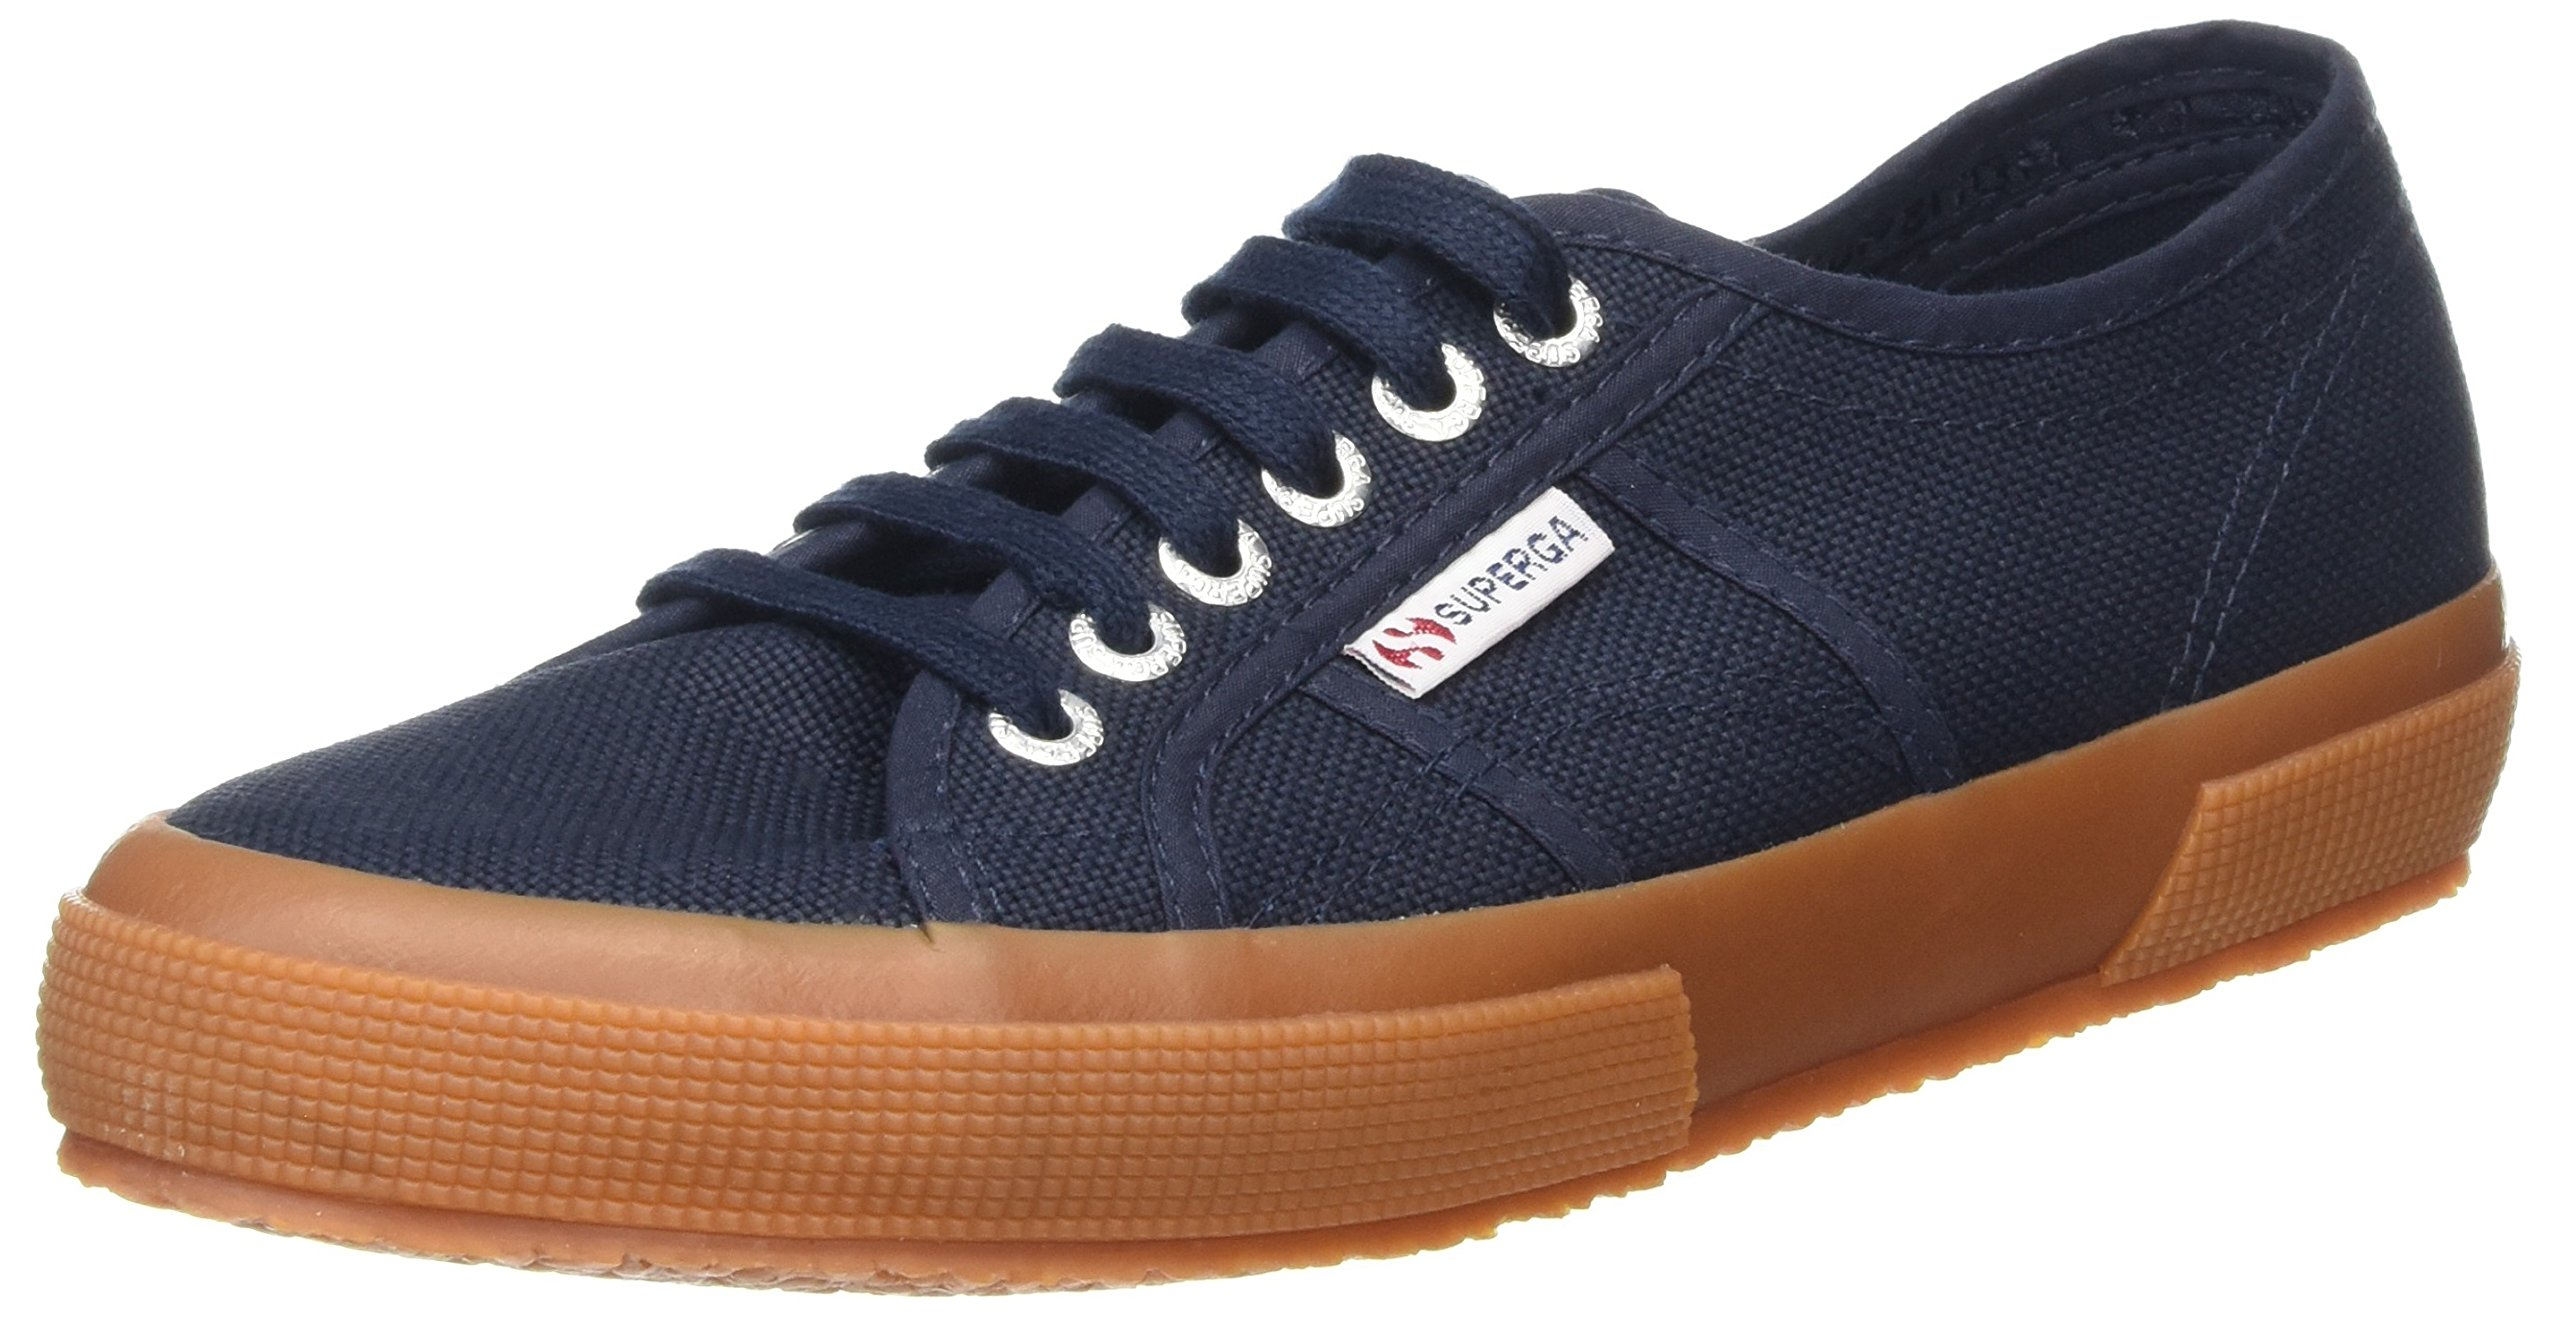 Superga 2750 Cotu Classic, Men's Low-Top, Blue (Navy Gum), 9.5 UK (44 EU EU)